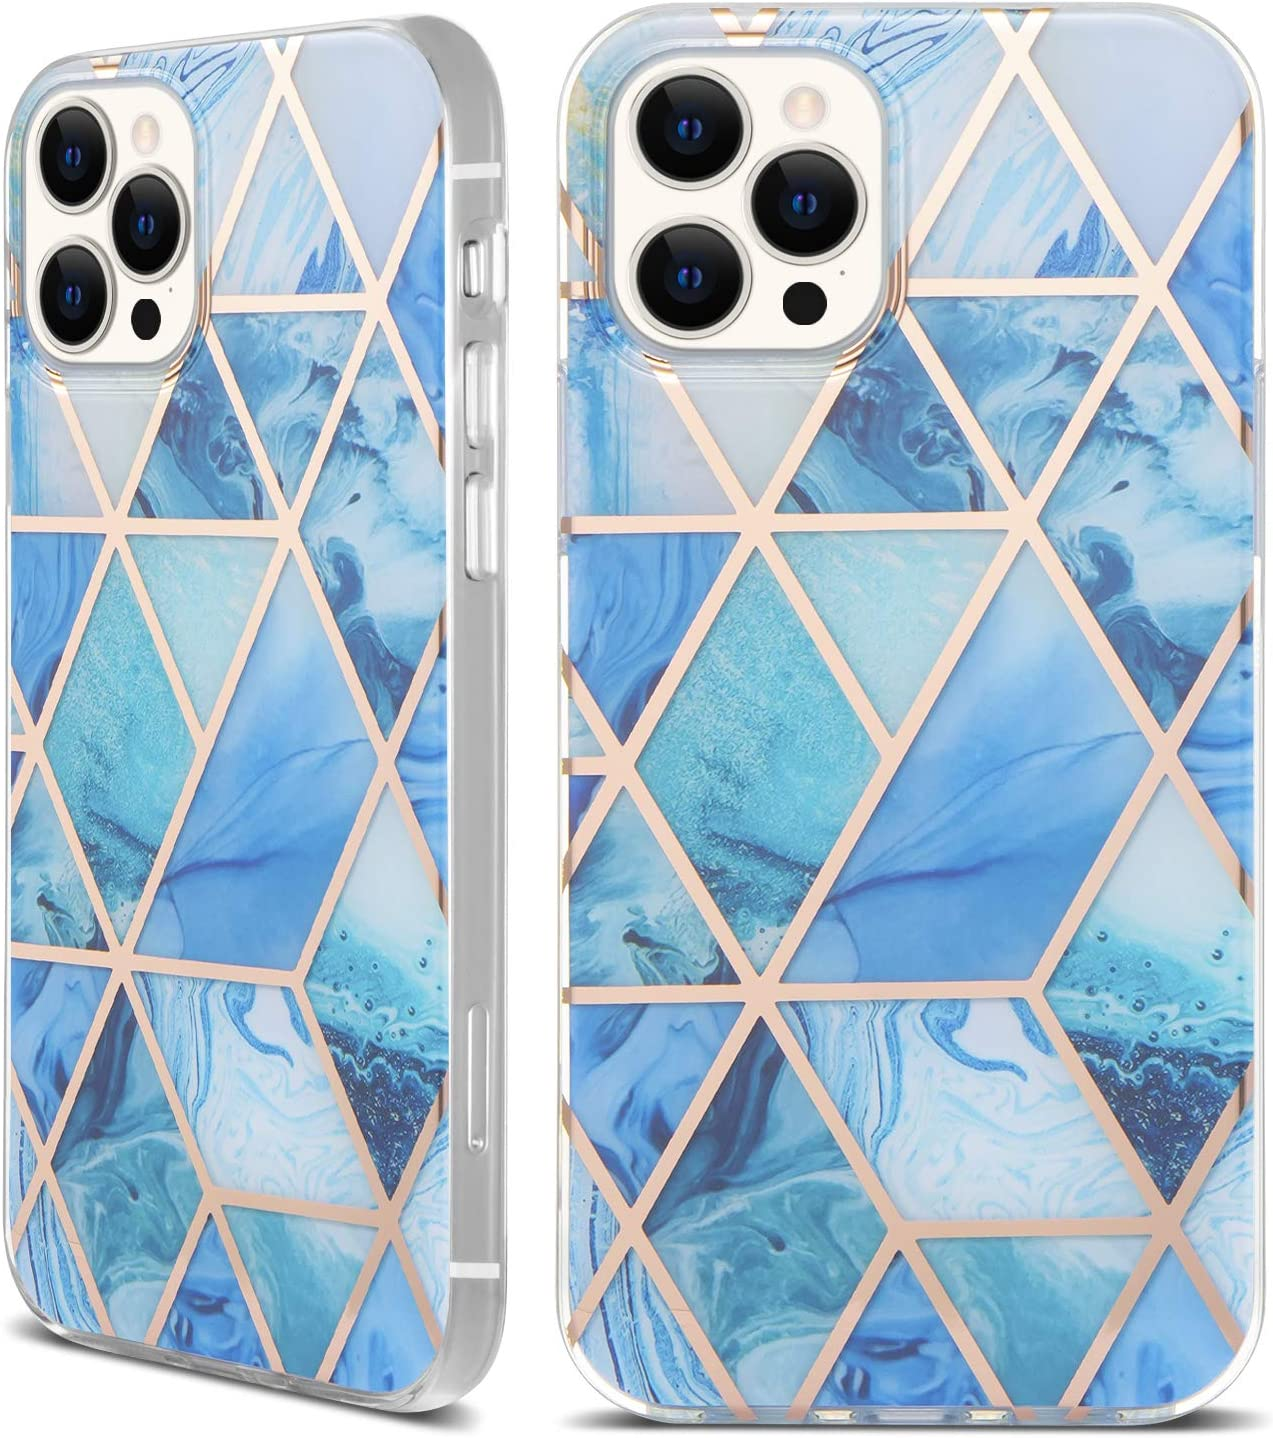 tharlet iPhone 12 Pro Max Case 6.7 in 5G, Glossy Bronzing Geometric Marble Case Hard PC Soft TPU Bumper Protective Shockproof Shell Cover for iPhone 12 Pro Max 2020 - Blue